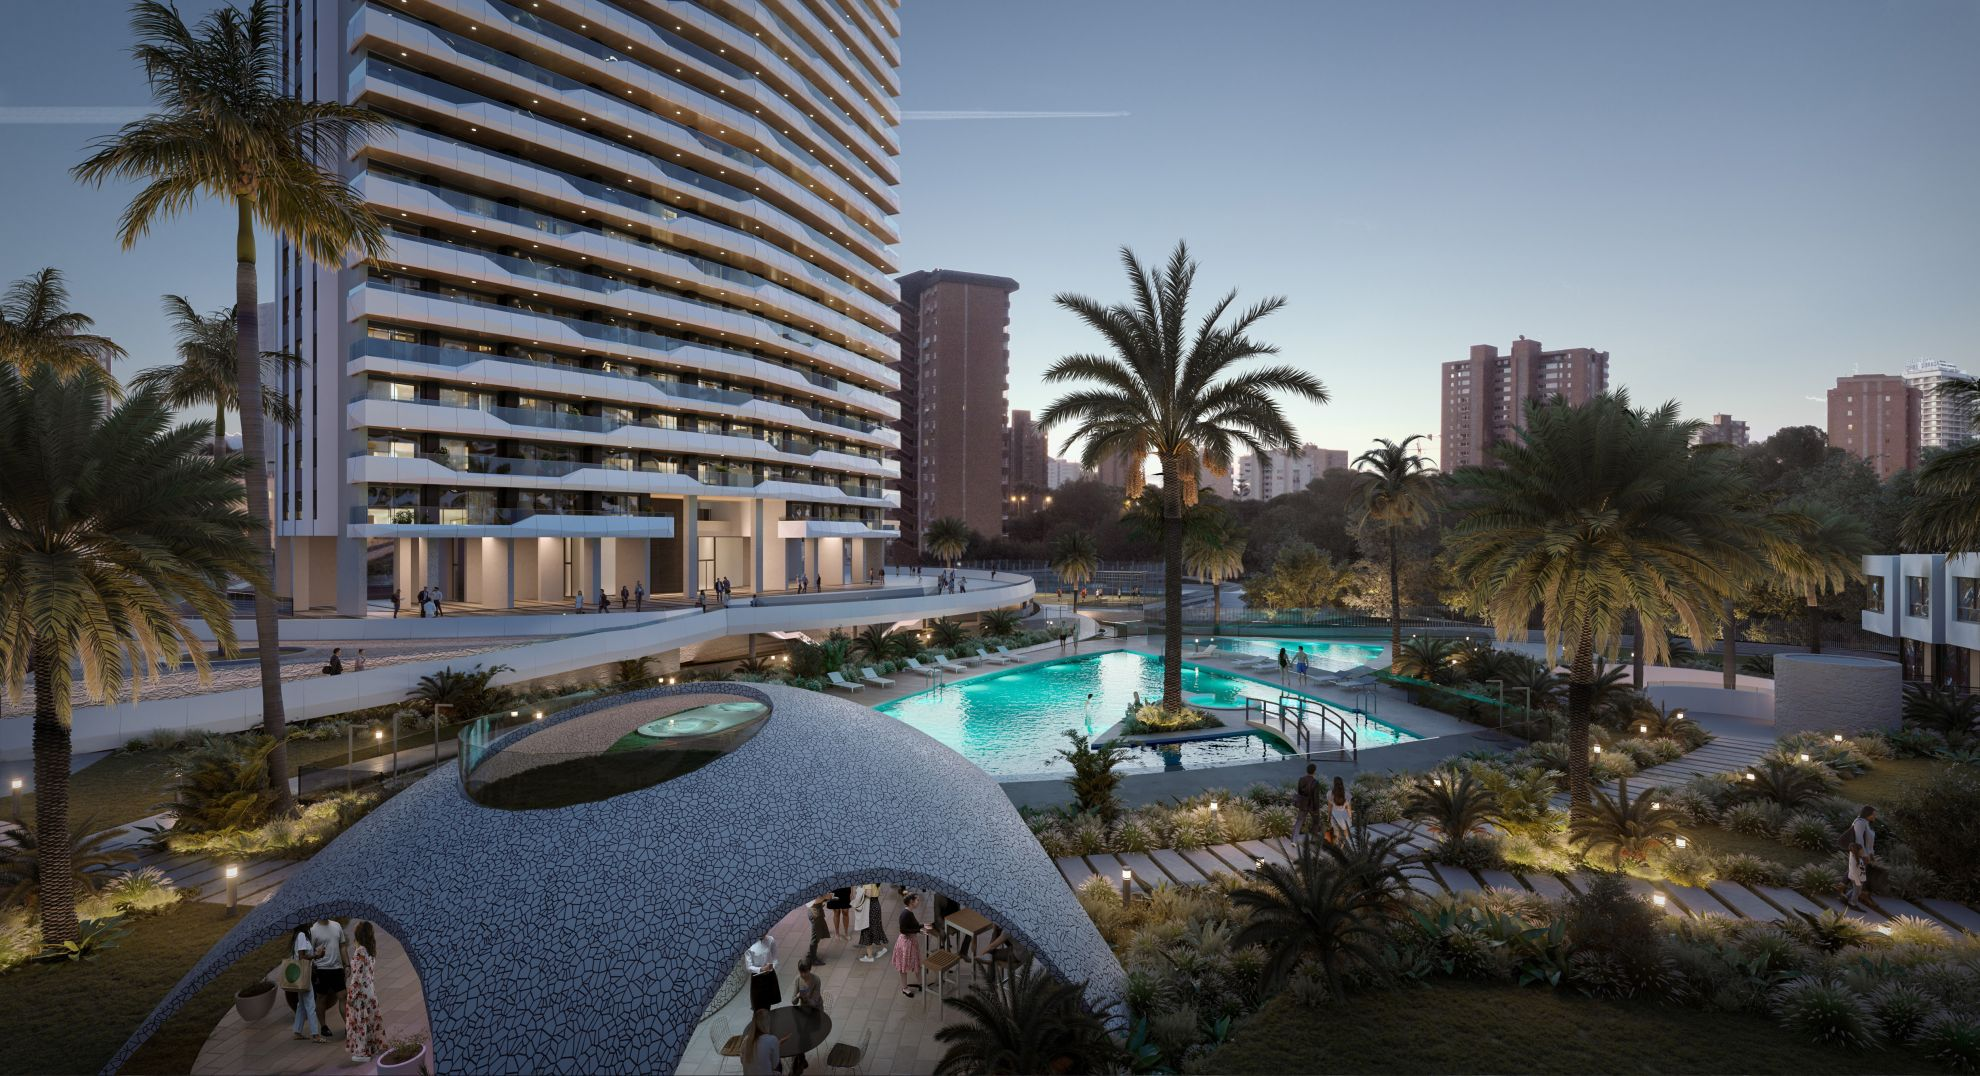 Exclusive apartments in the beautiful location of Benidorm 1